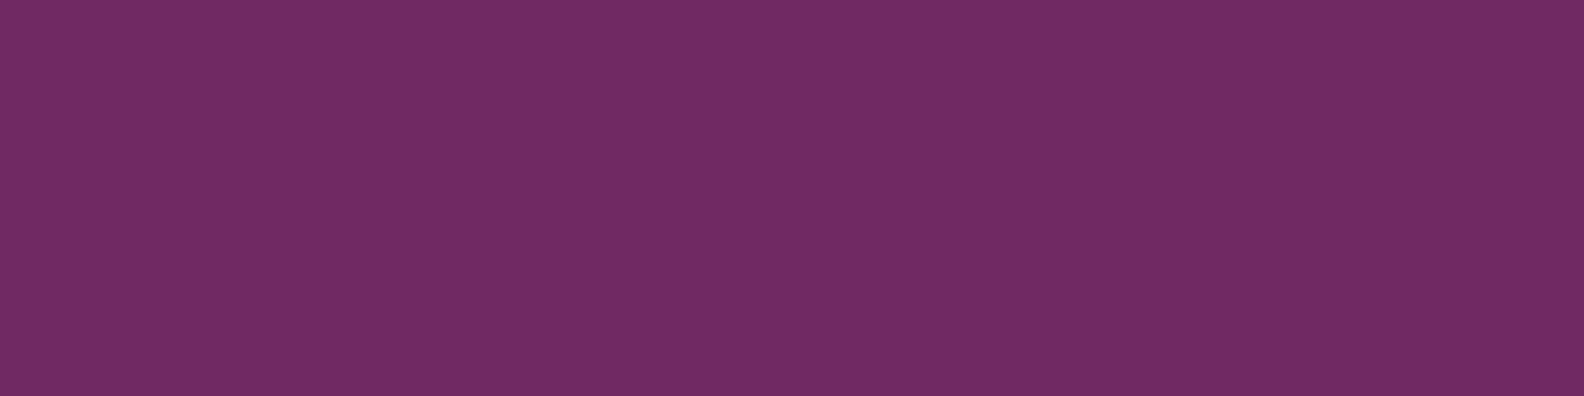 1584x396 Byzantium Solid Color Background